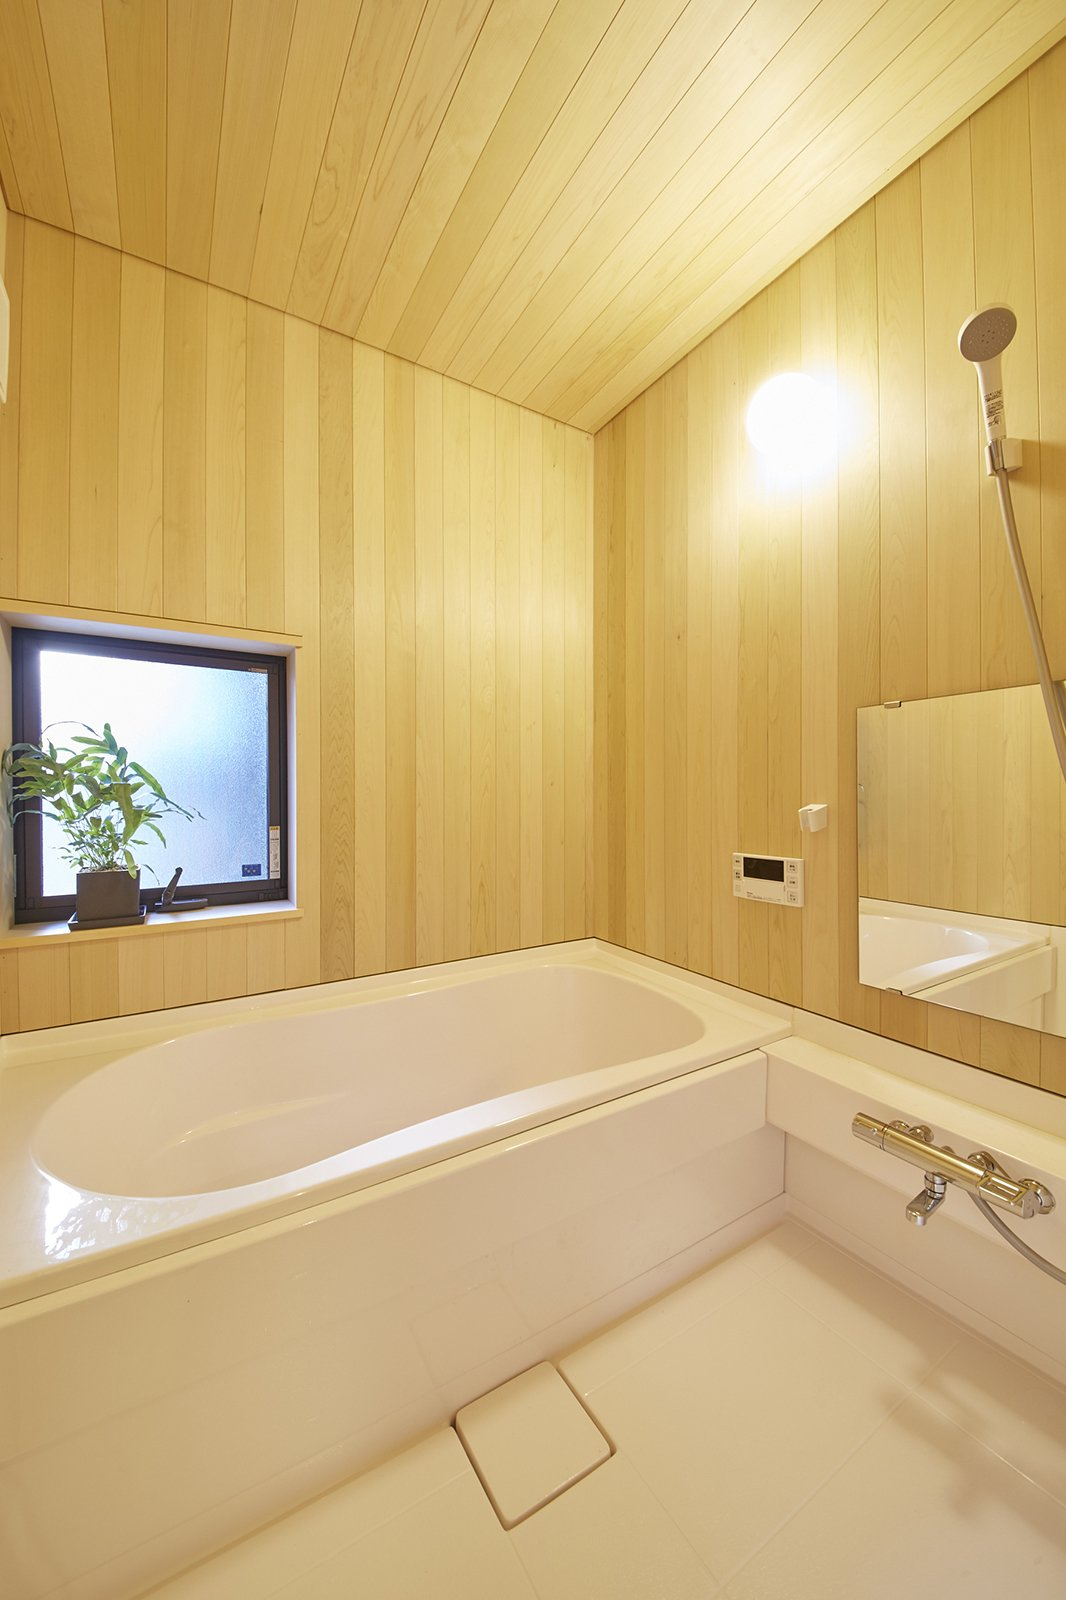 Bath, Drop In, Open, and Wall The bathroom's sauna-like interior includes a deep Toto bathtub—characteristic of traditional Japanese baths. The wooden hiba paneling, chosen because it is more water resistant than hinoki, is specific to the Northern Aomori region of Japan.  Best Bath Wall Drop In Photos from Yanagisaki House